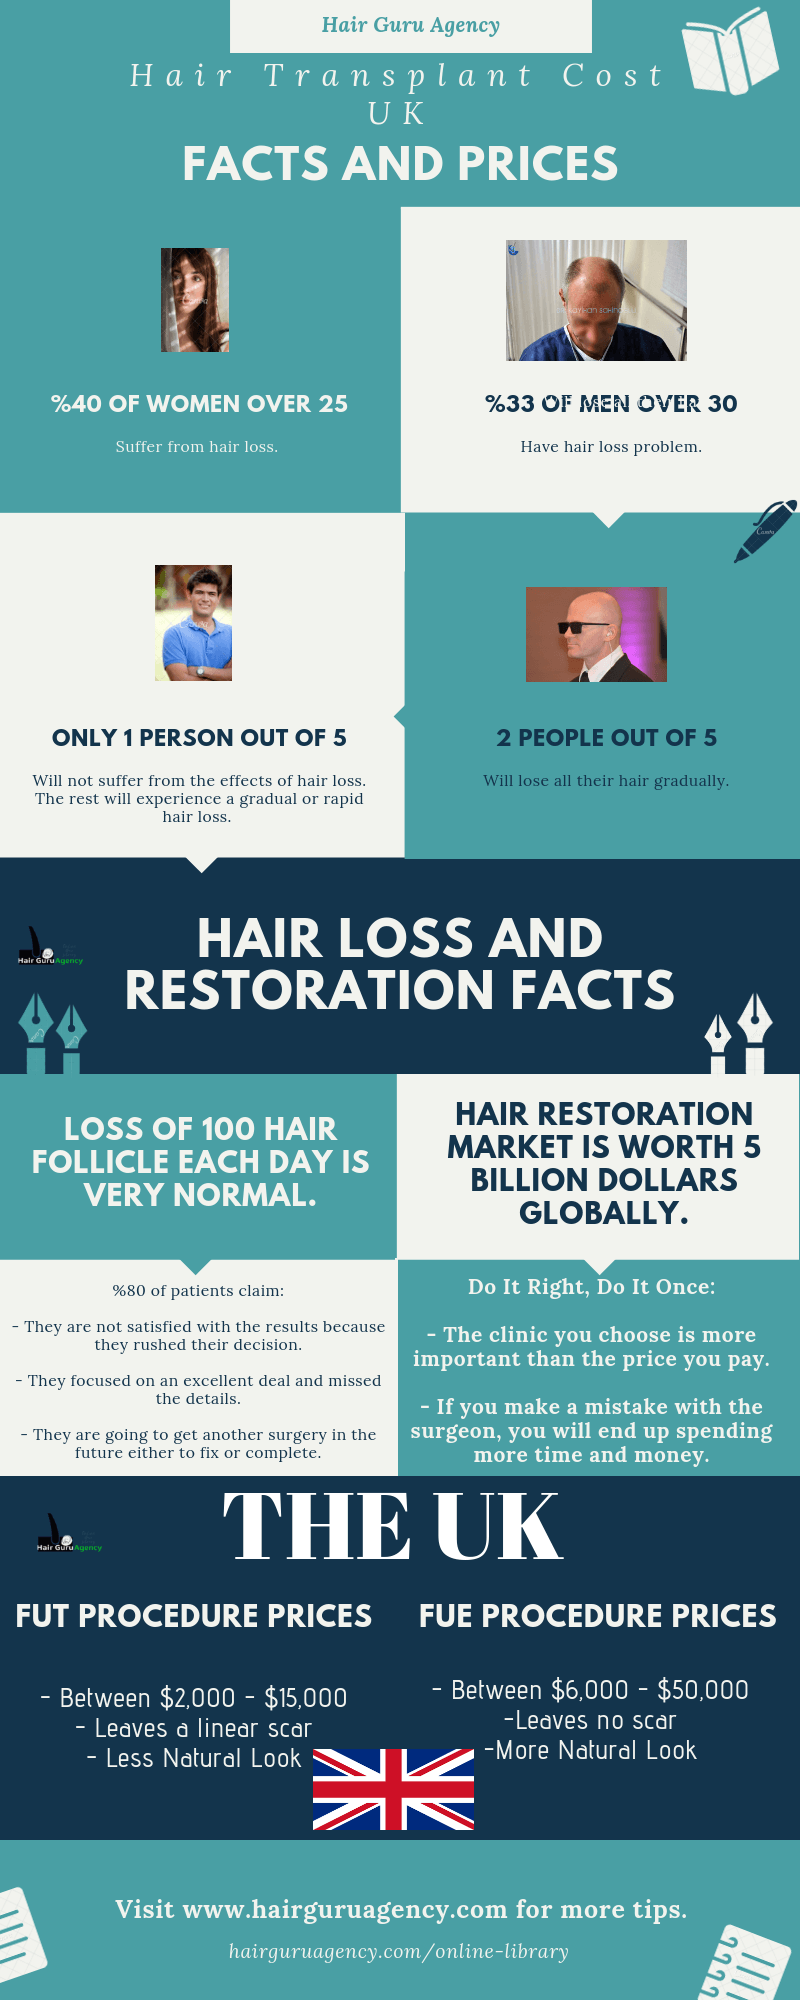 Hair transplant cost in UK